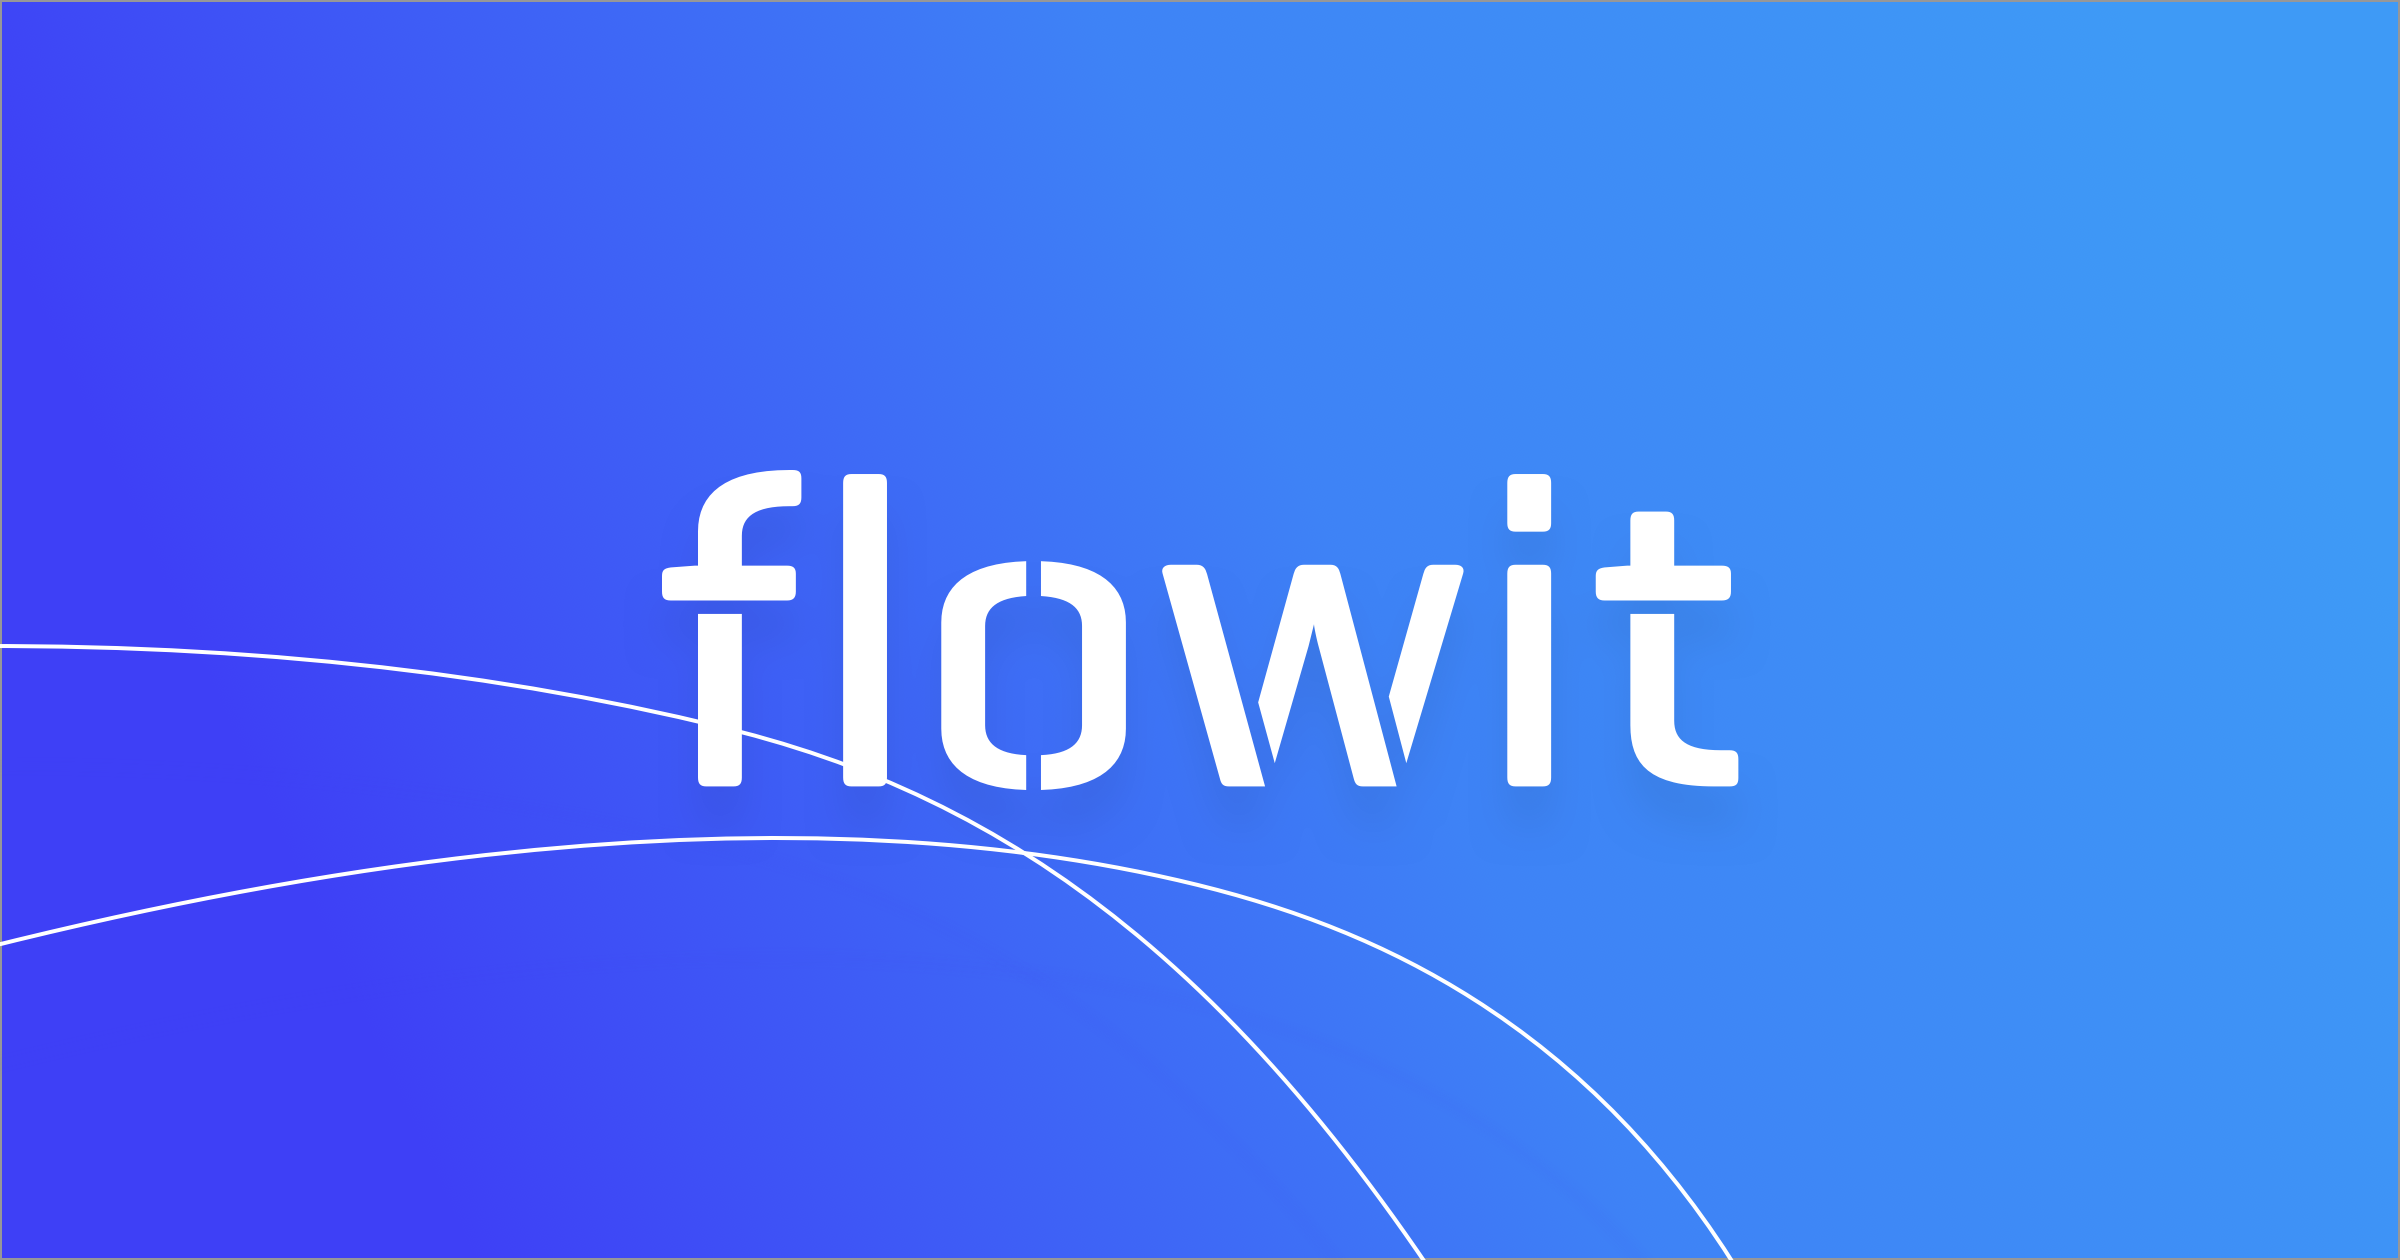 70be8a163aa About Flowit - Flowit